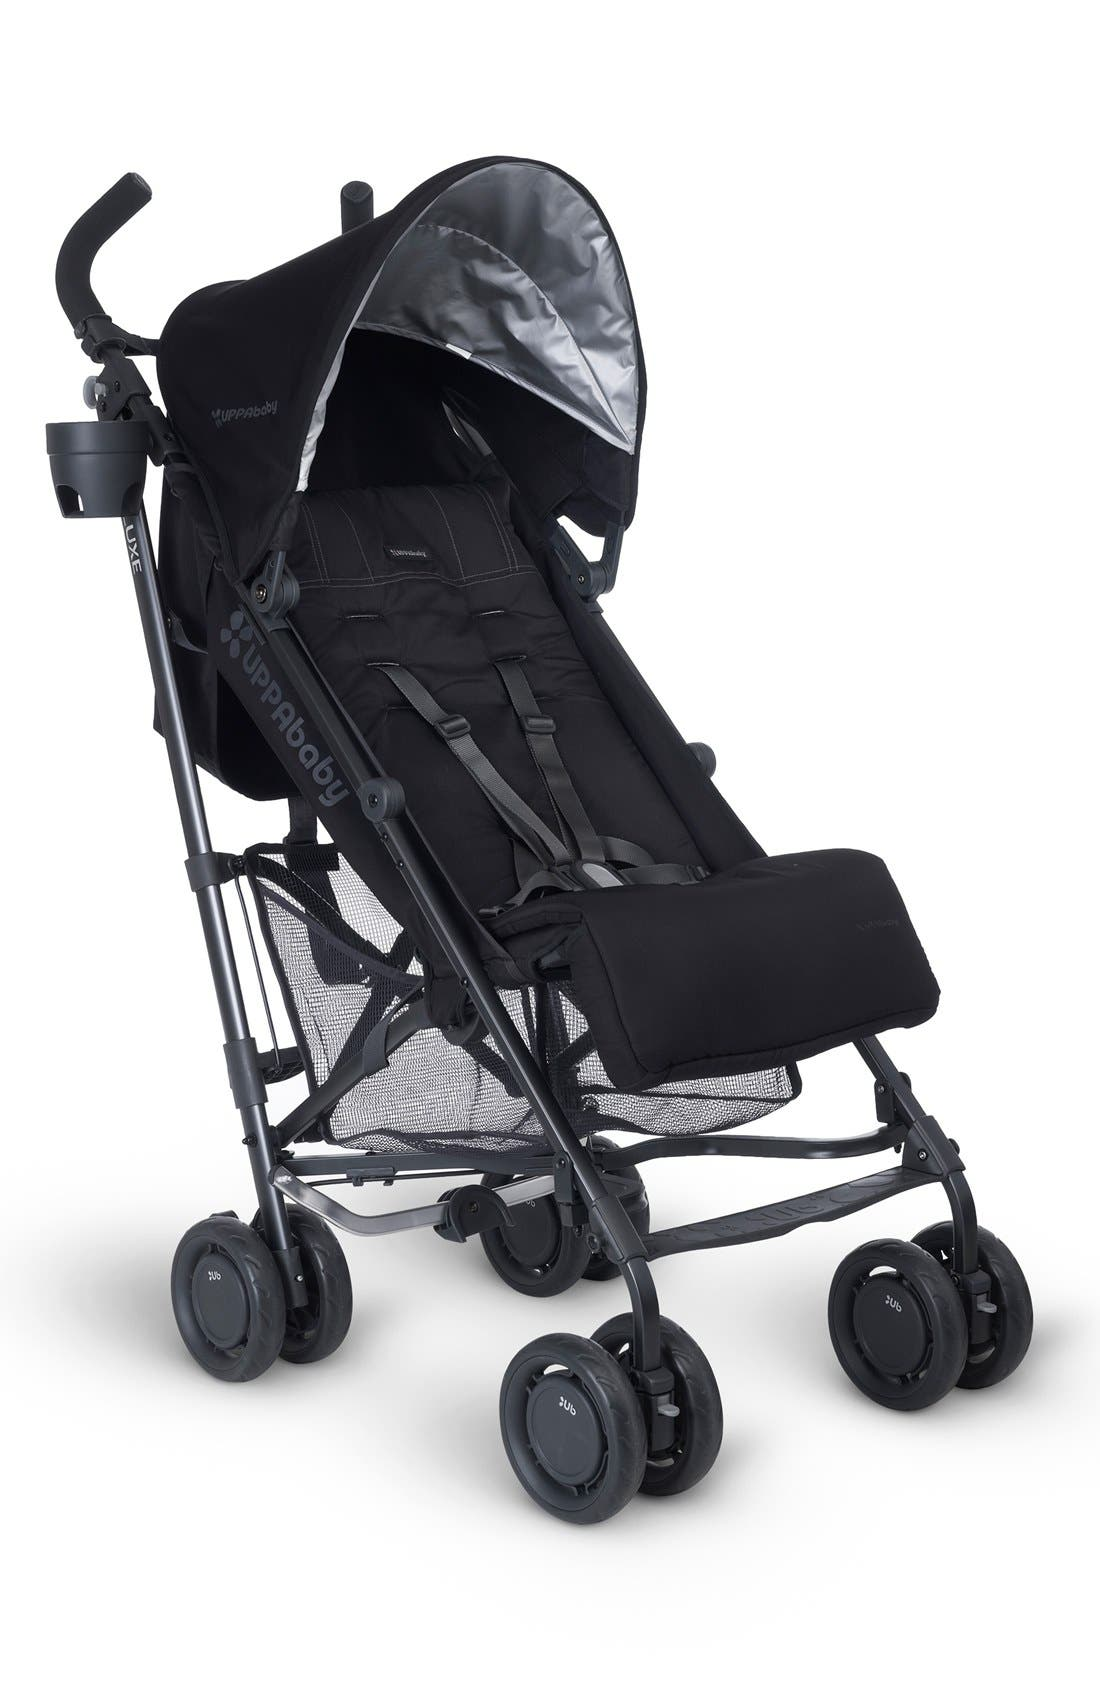 Main Image - UPPAbaby G-LUXE - Black Frame Reclining Umbrella Stroller  sc 1 st  Nordstrom & UPPAbaby G-LUXE - Black Frame Reclining Umbrella Stroller | Nordstrom islam-shia.org